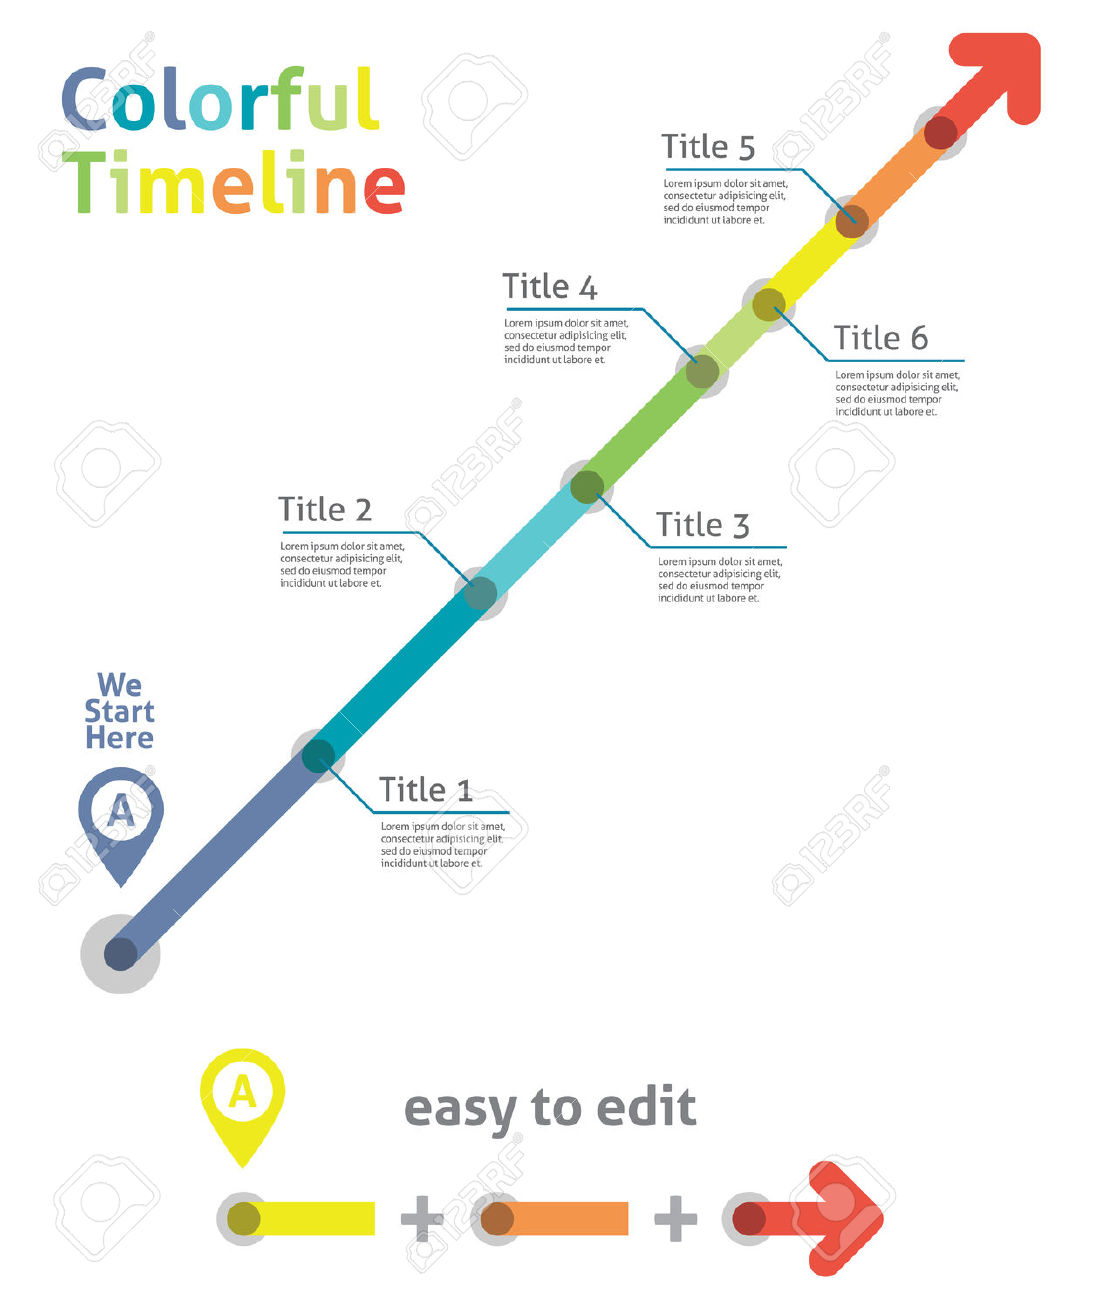 Timeline clipart 20 free Cliparts | Download images on ...